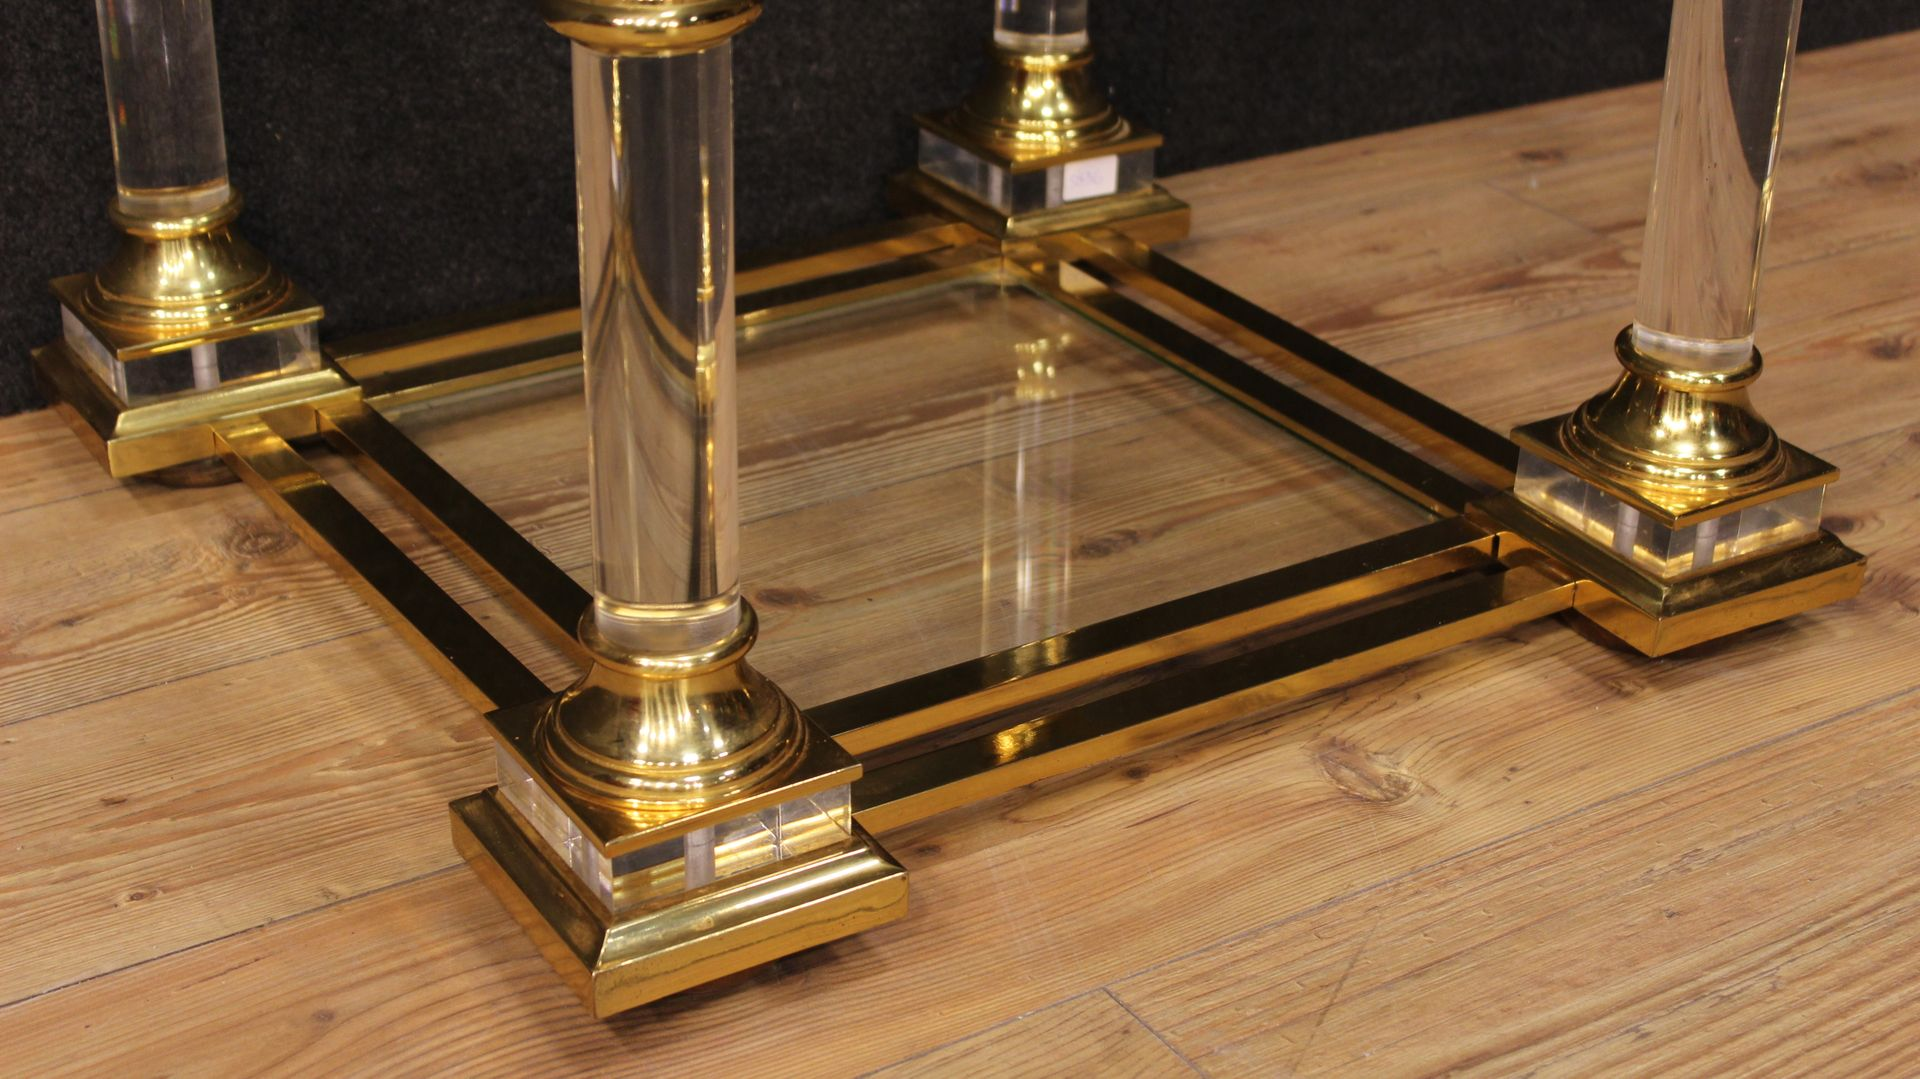 Two Tiered Italian Glass Brass Coffee Table For Sale At Pamono